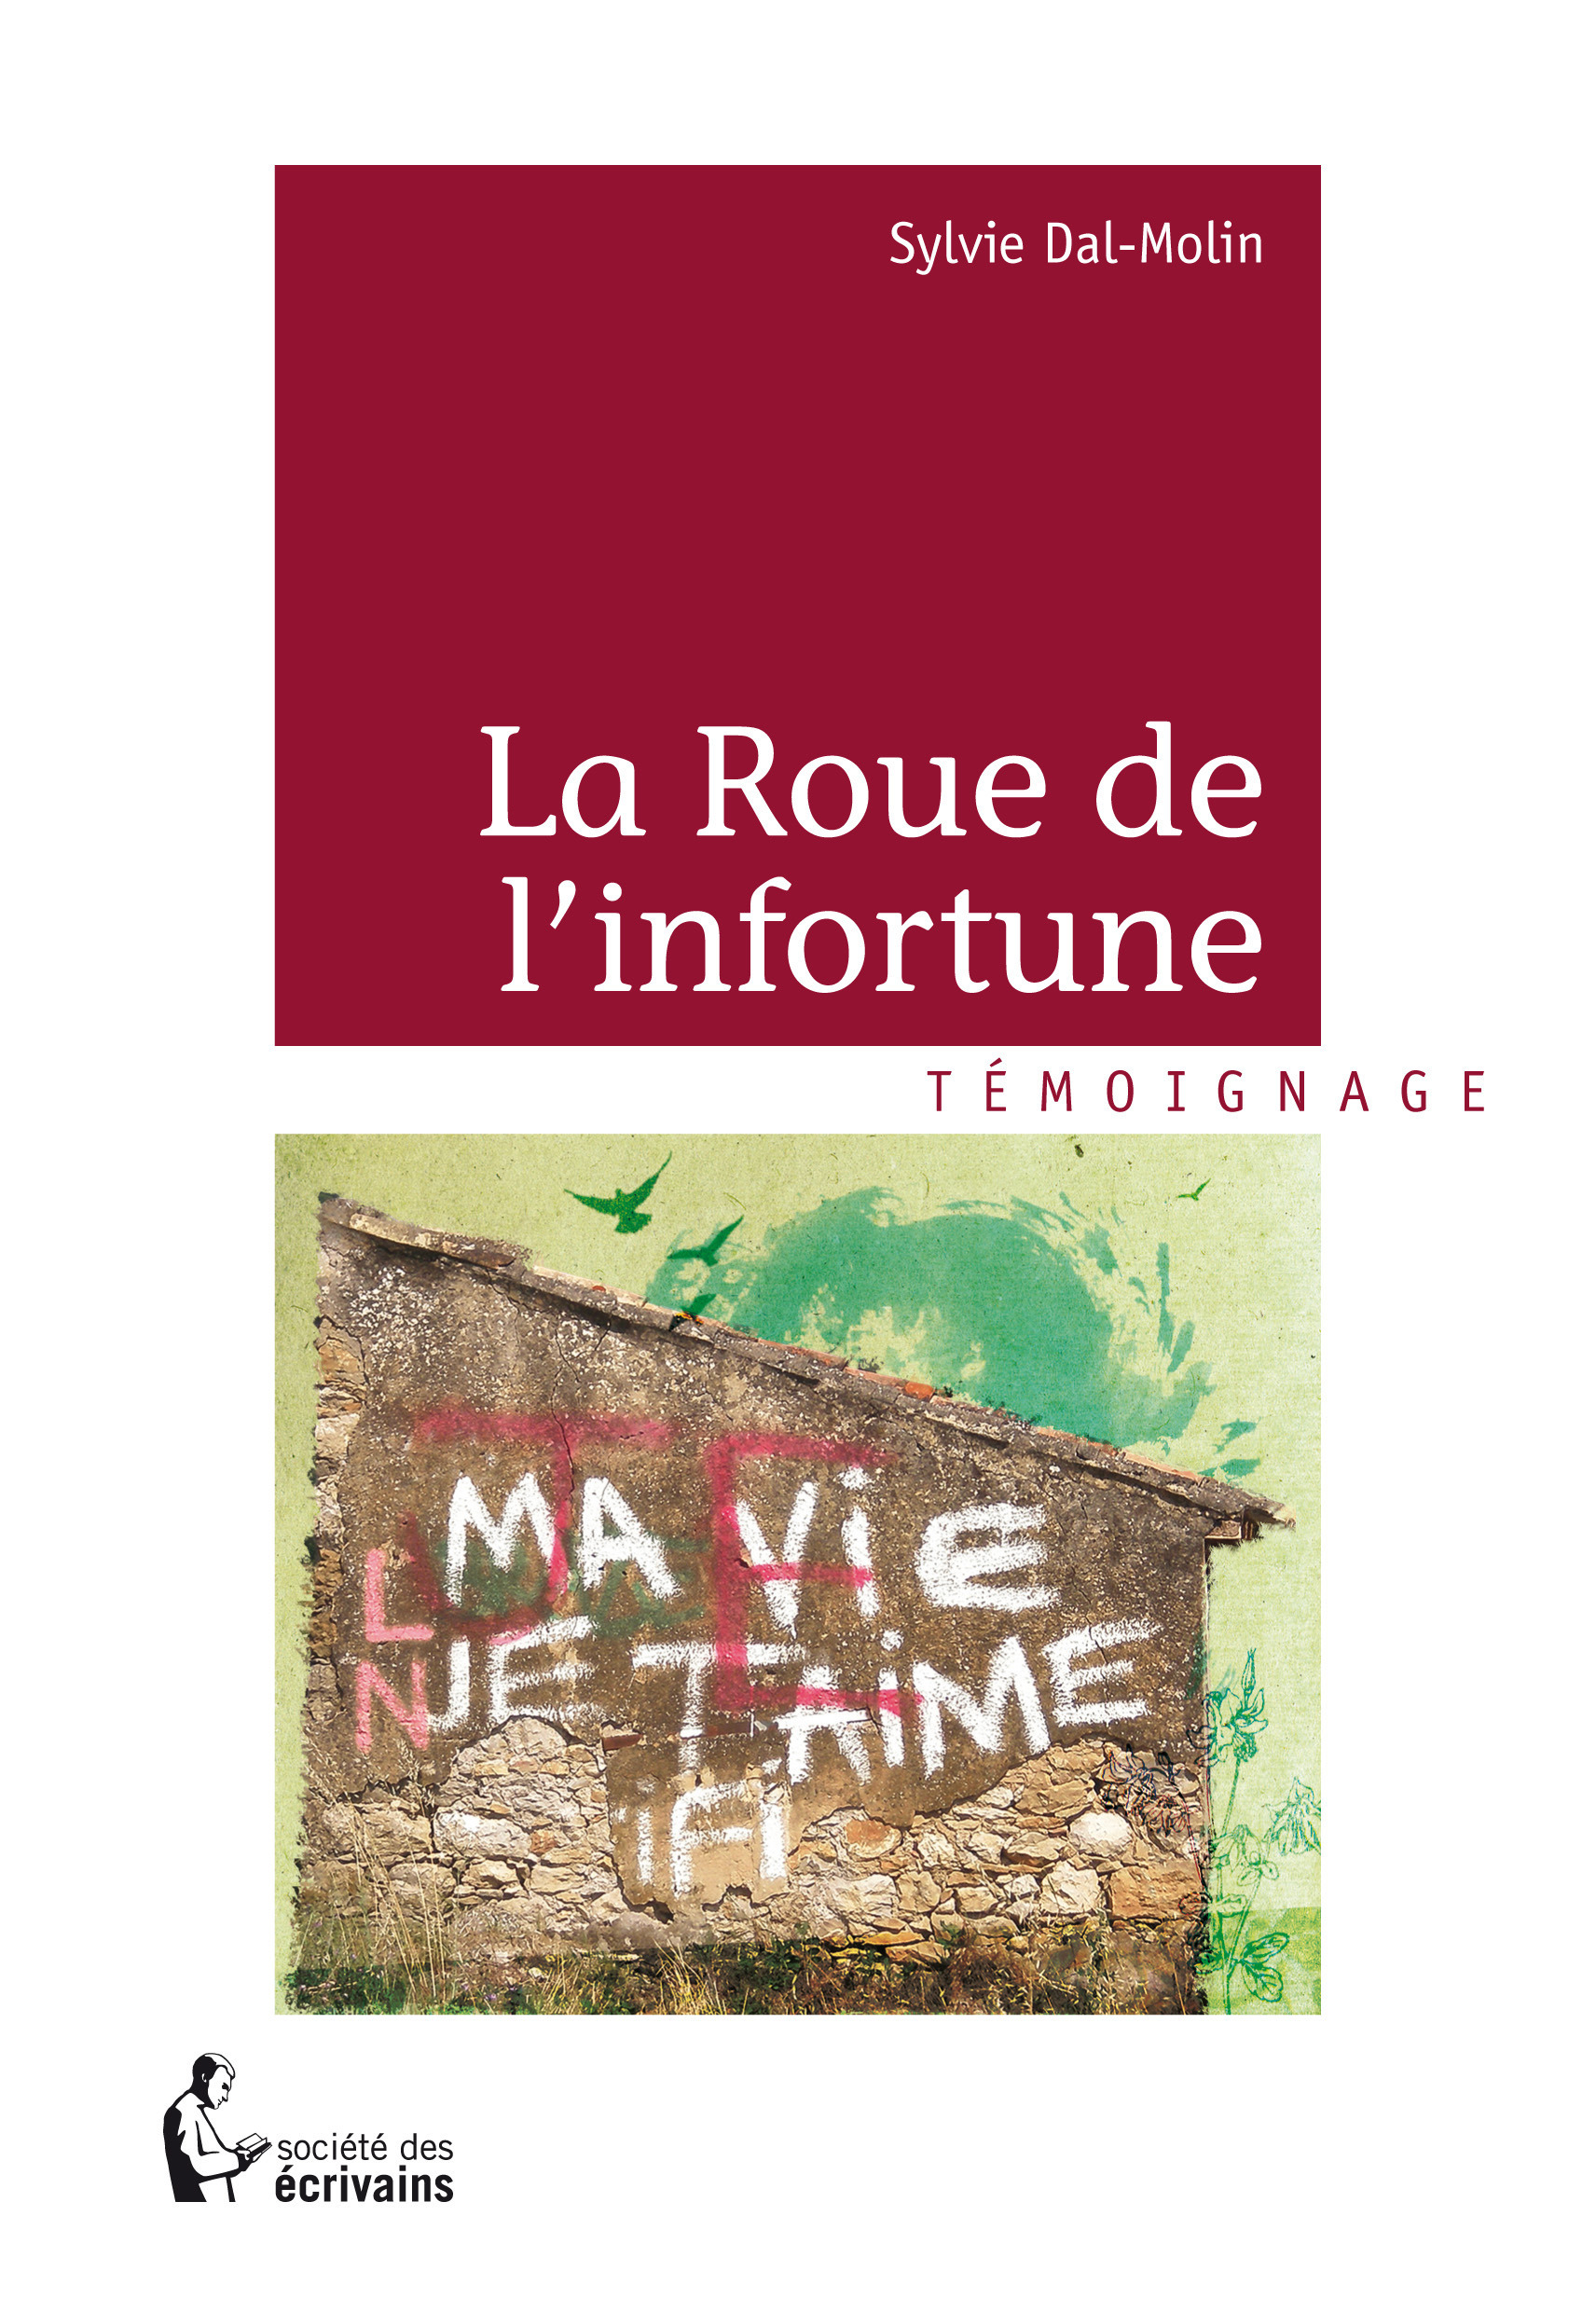 La roue de l'infortune